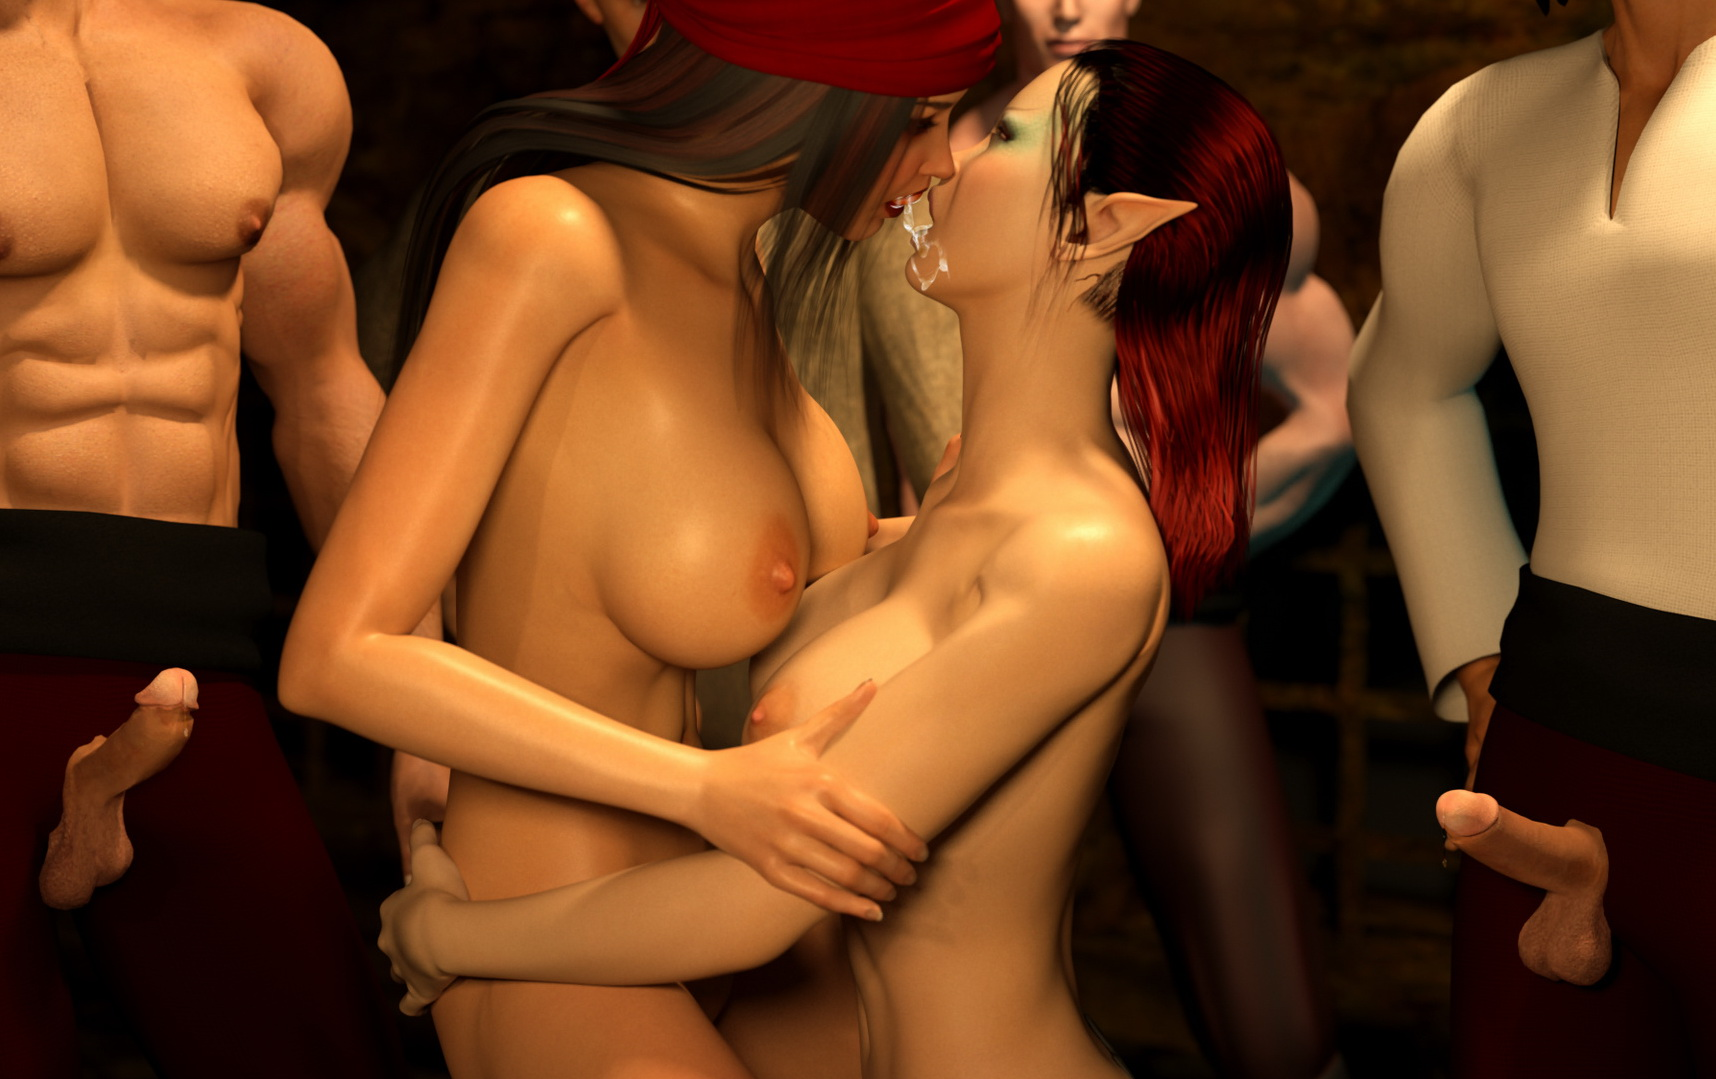 Adult fuck pc game torrent at pirate  smut photos